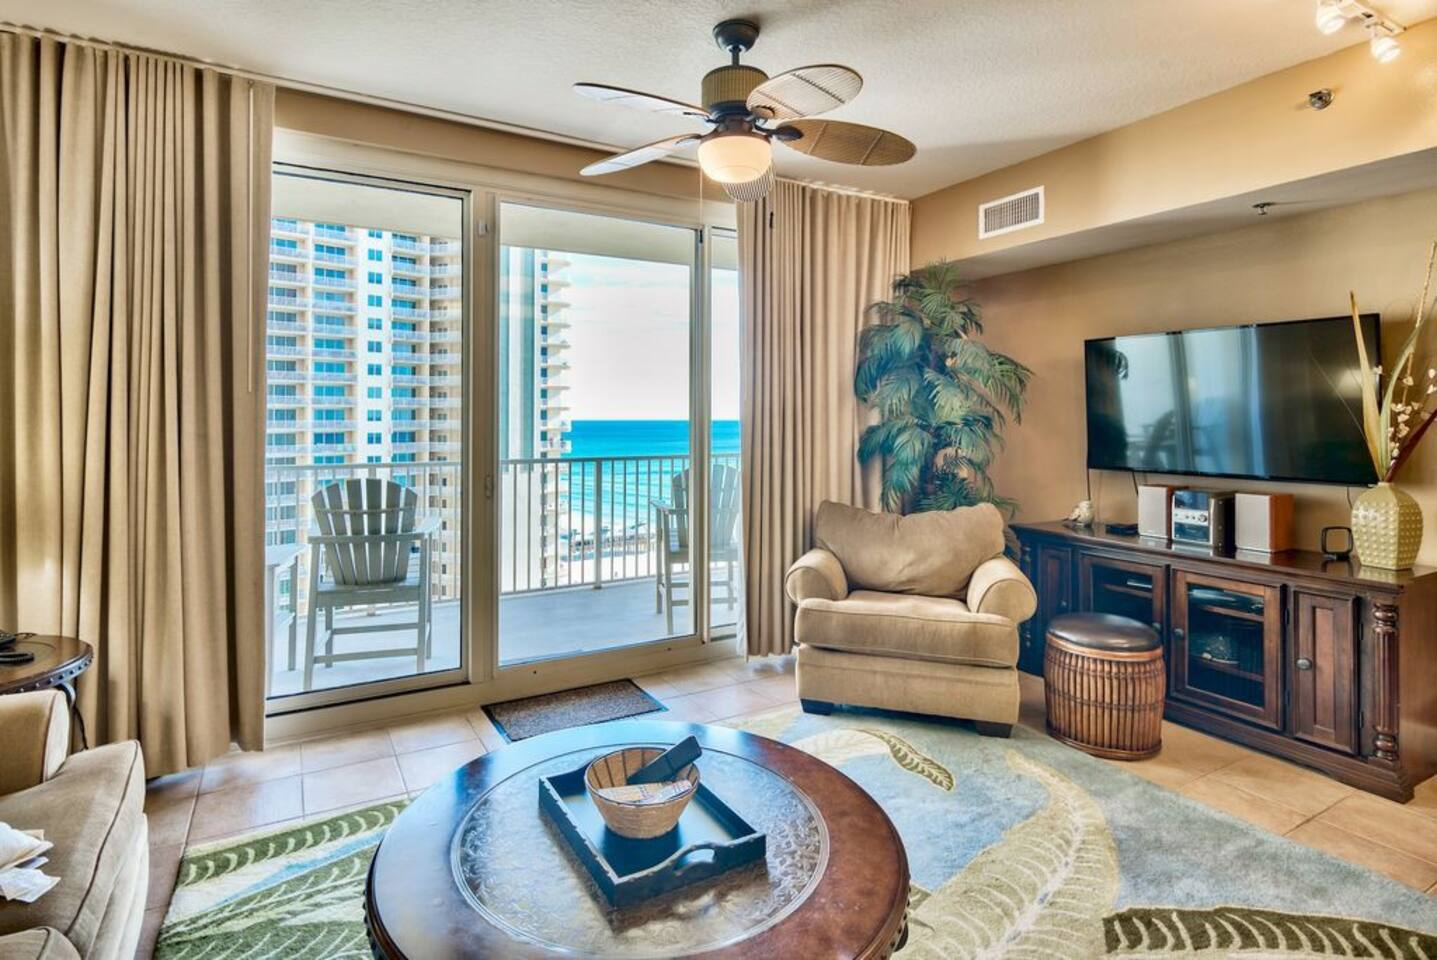 Living area with a fantastic view and a flat screen TV